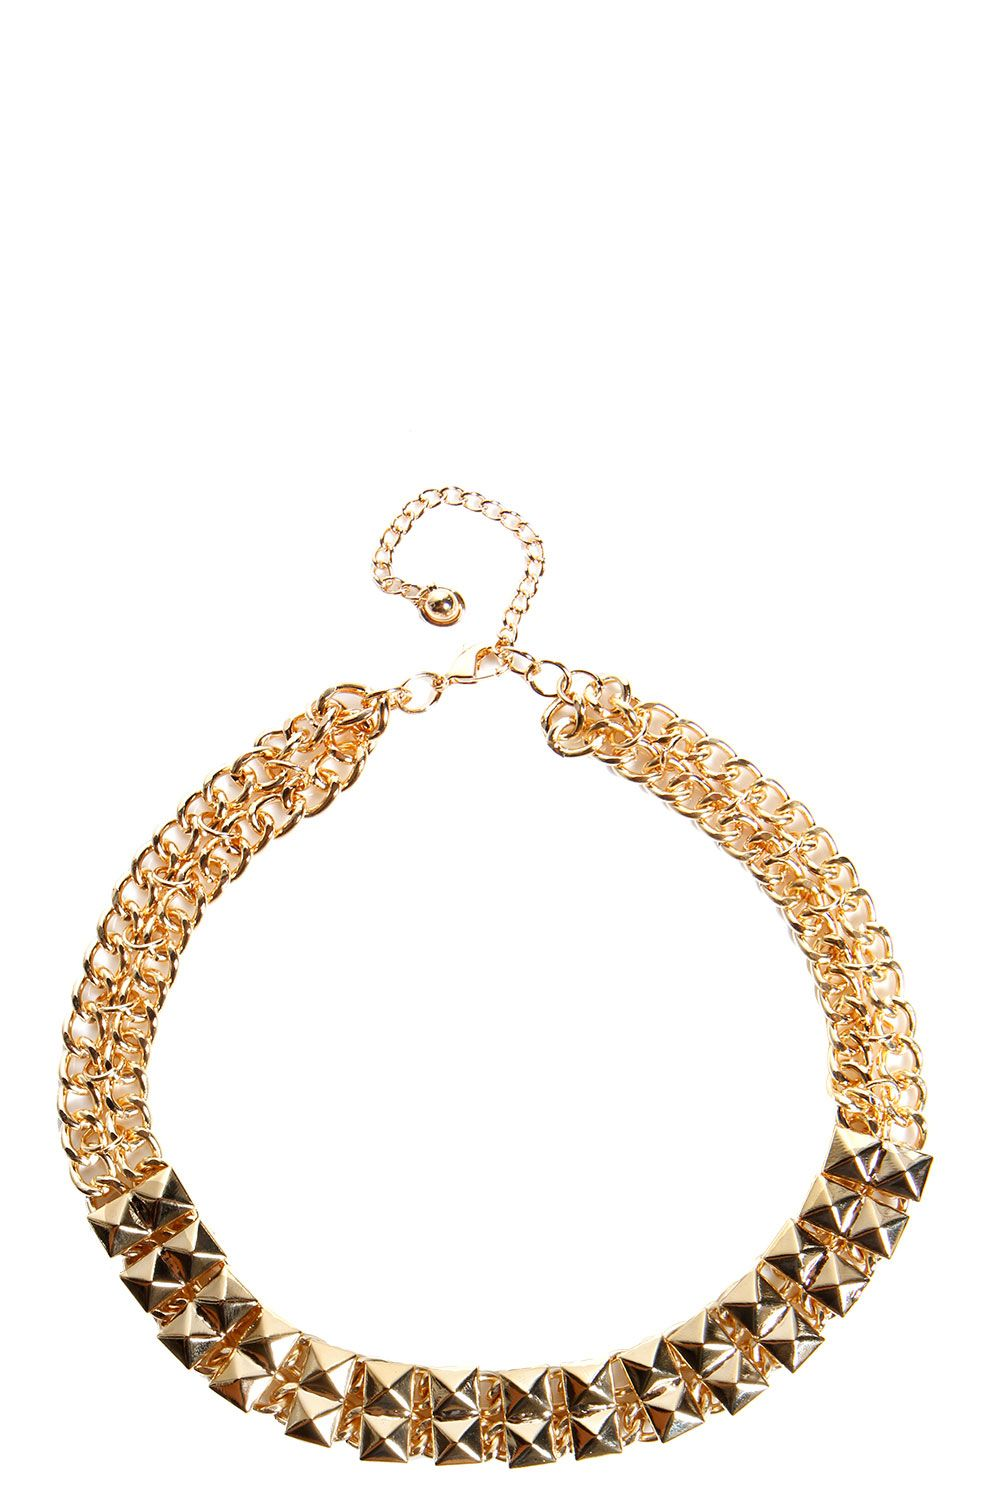 Lily Square Link Chain Necklace http://pixiie.net/shop/lily-square-link-chain-necklace-gold/